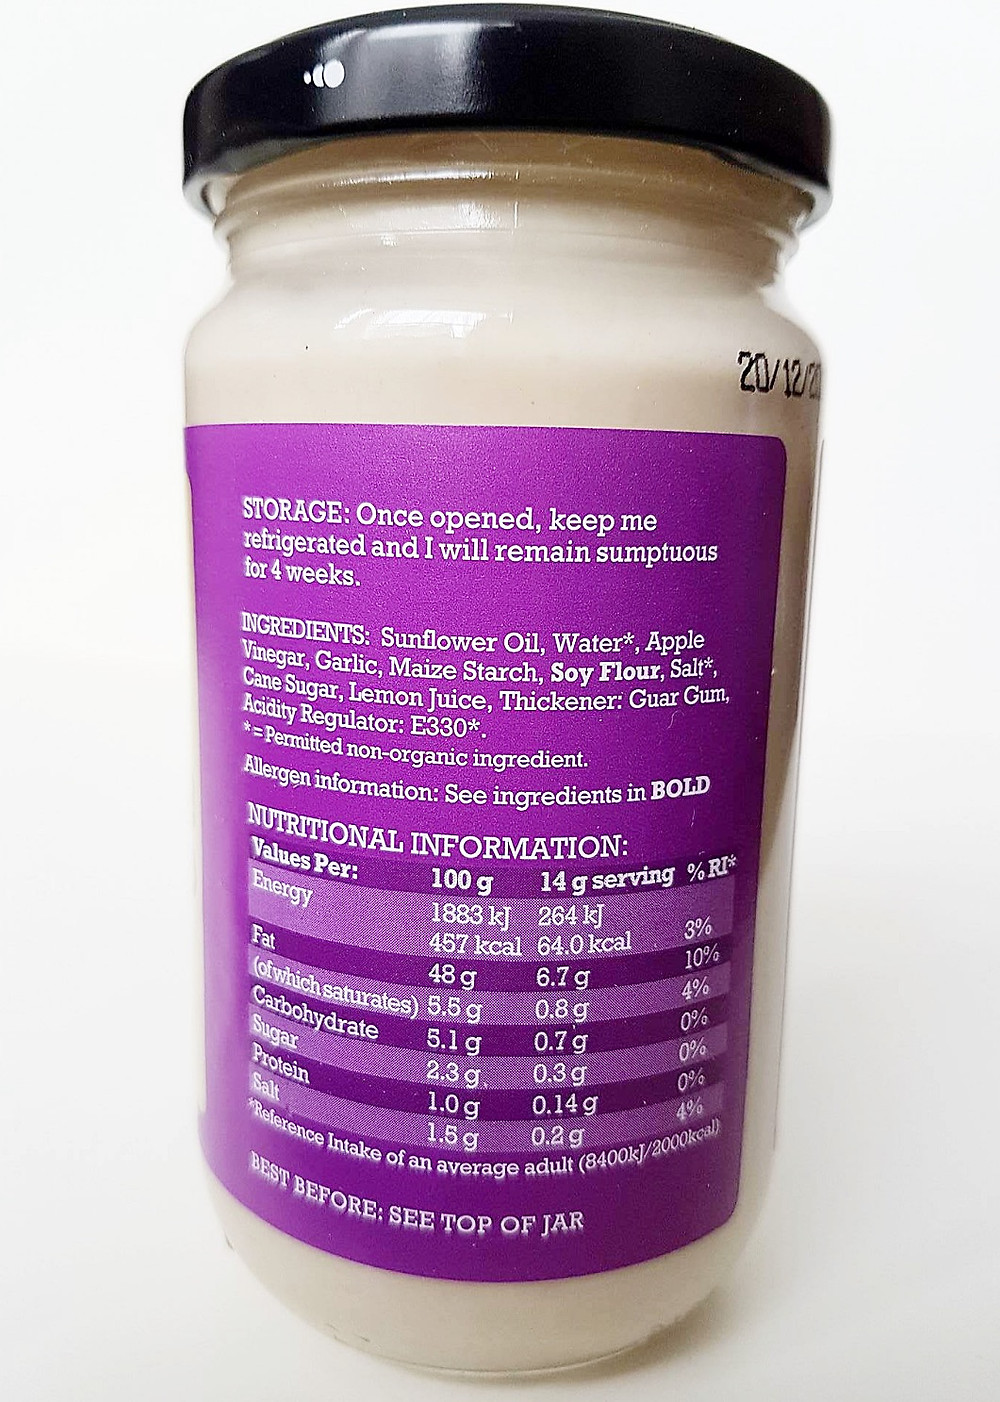 Mr Organic Garlic Mayo Nutritional Values